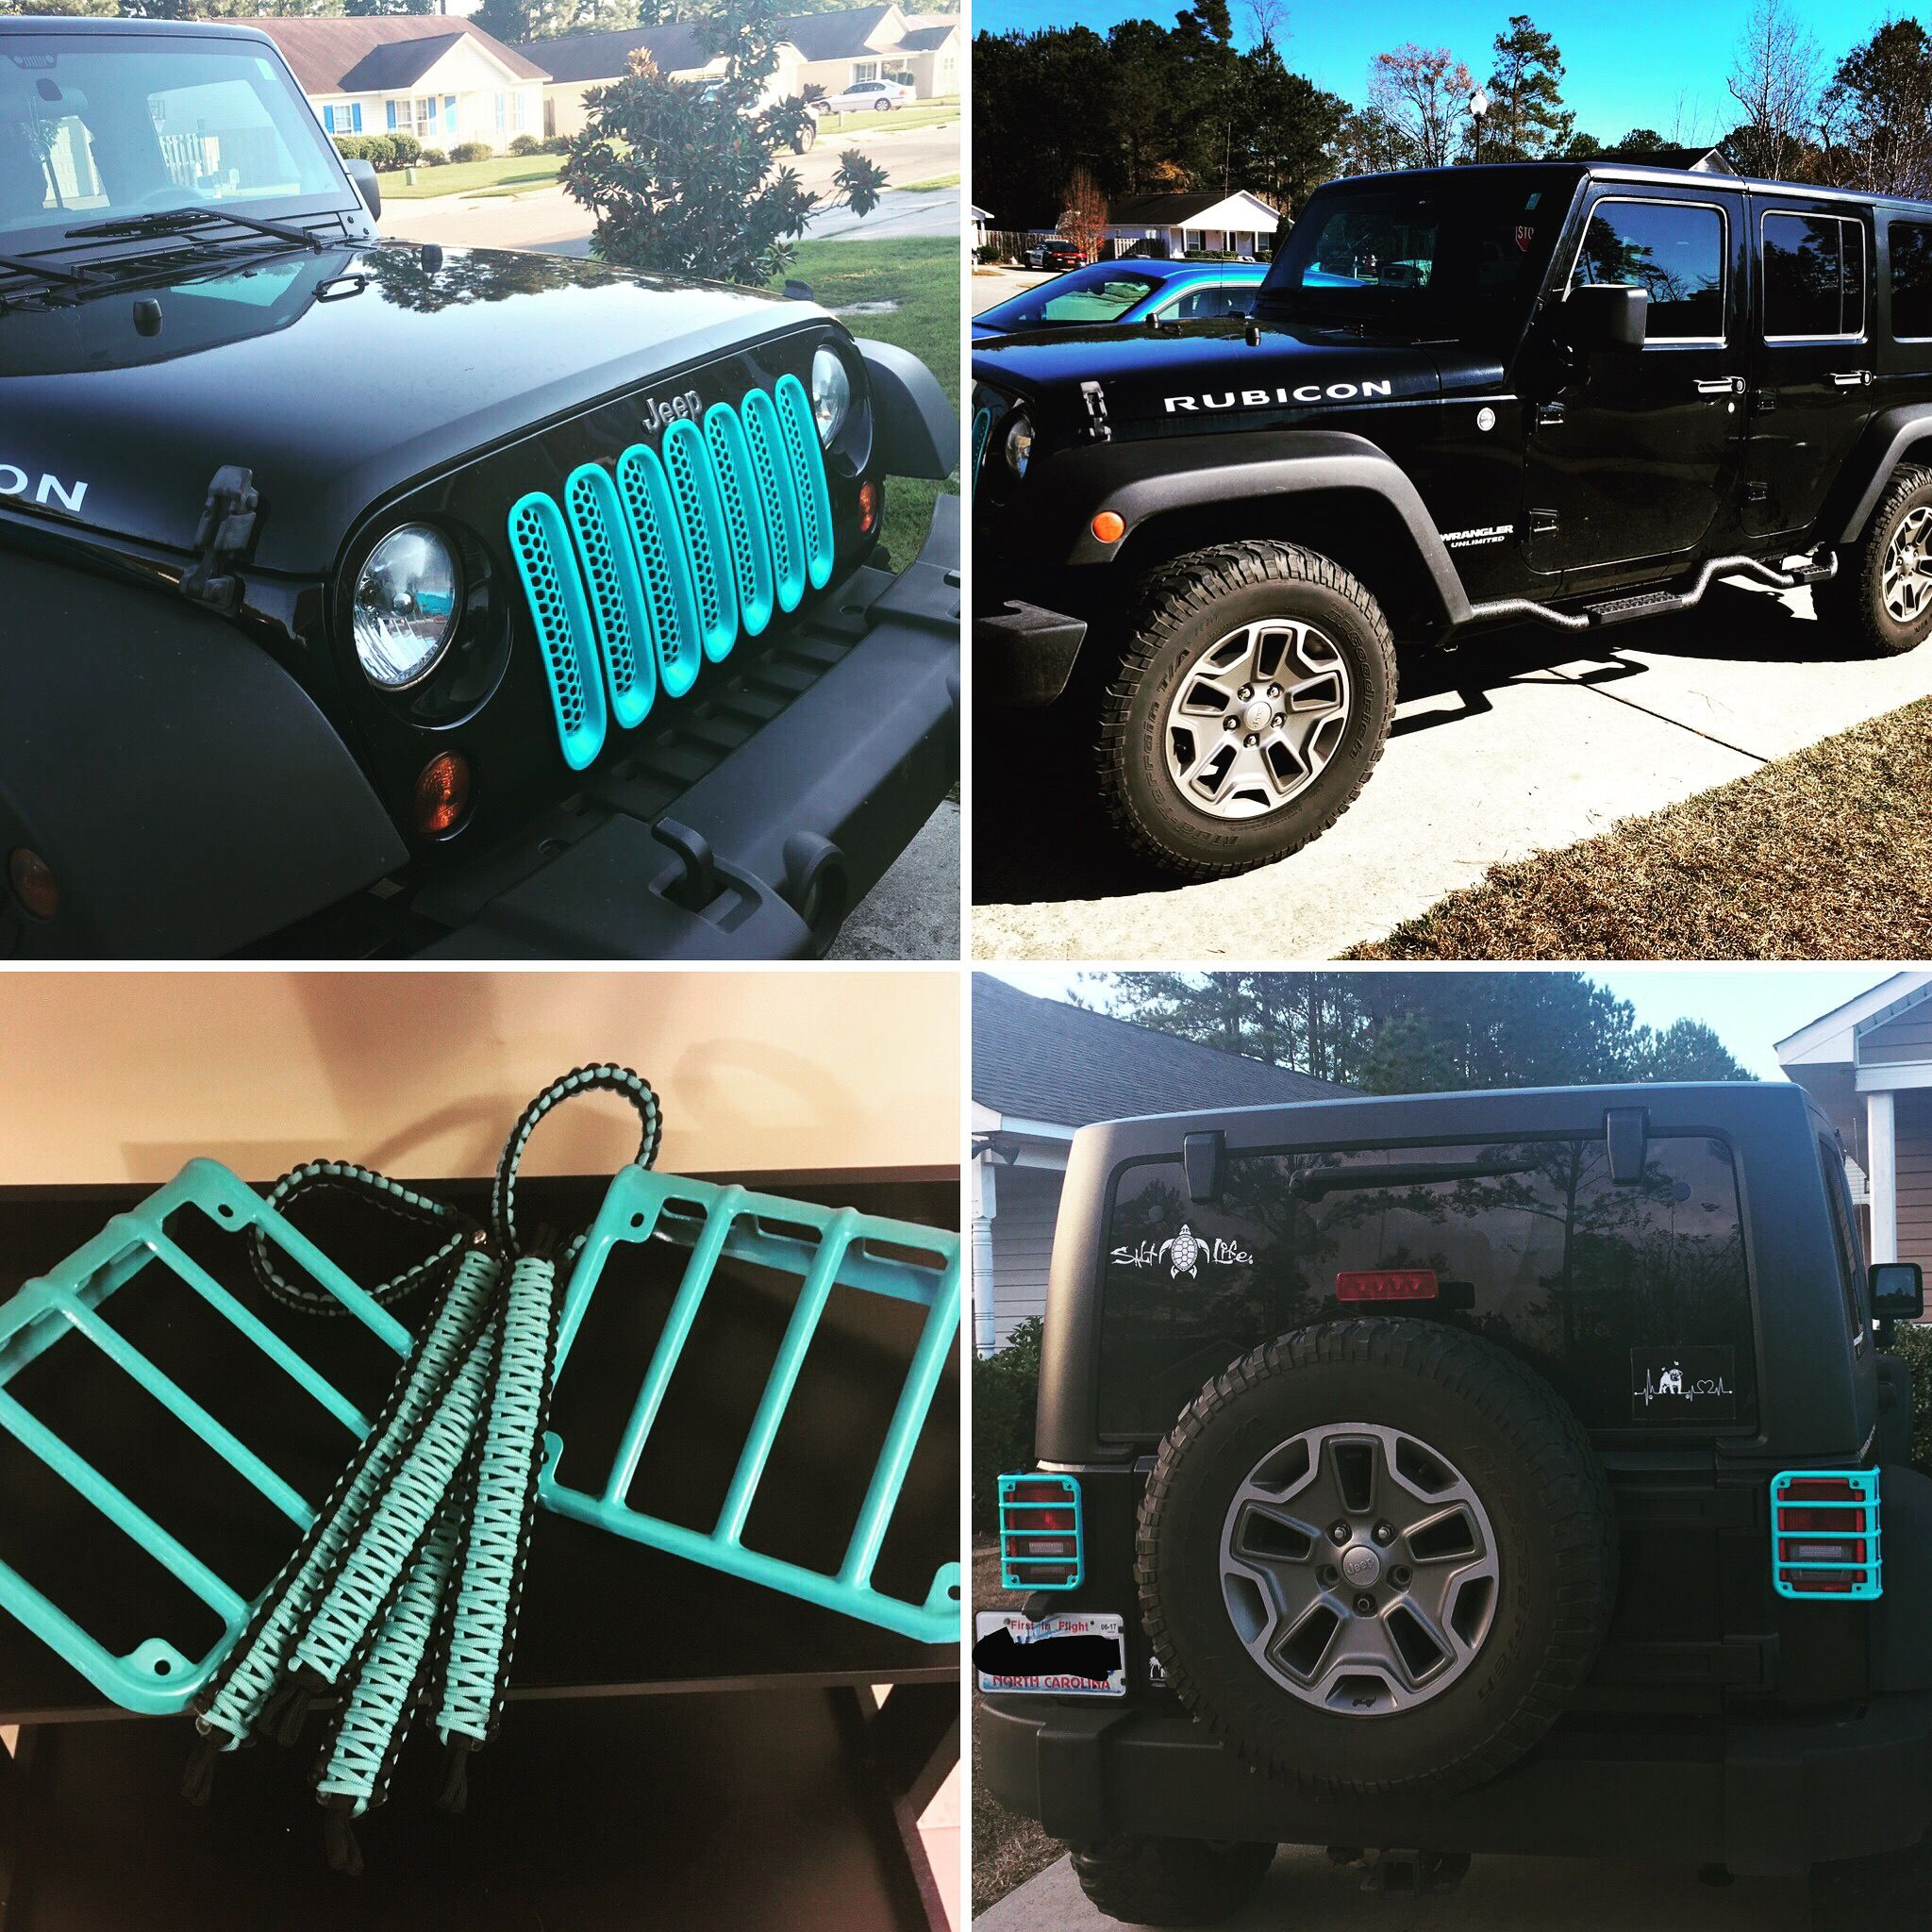 Customized Jeep Rubicon Unlimited Turquoise Teal Paracordgrabhandles Grillinserts Taillightcovers J Jeep Rubicon Accessories Jeep Rubicon Dream Cars Jeep